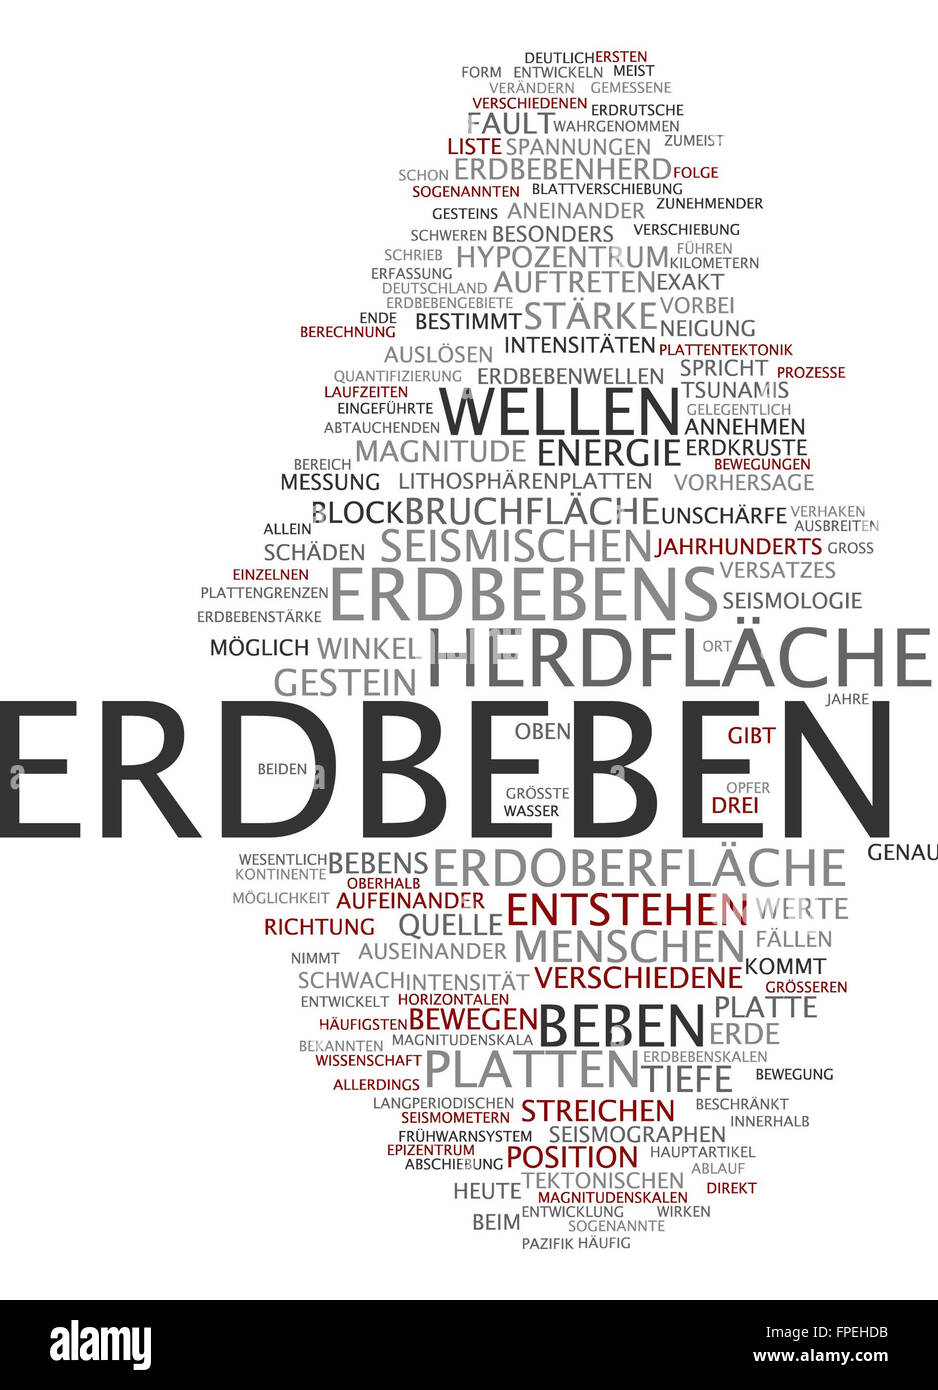 Erdbebenwellen High Resolution Stock Photography And Images Alamy